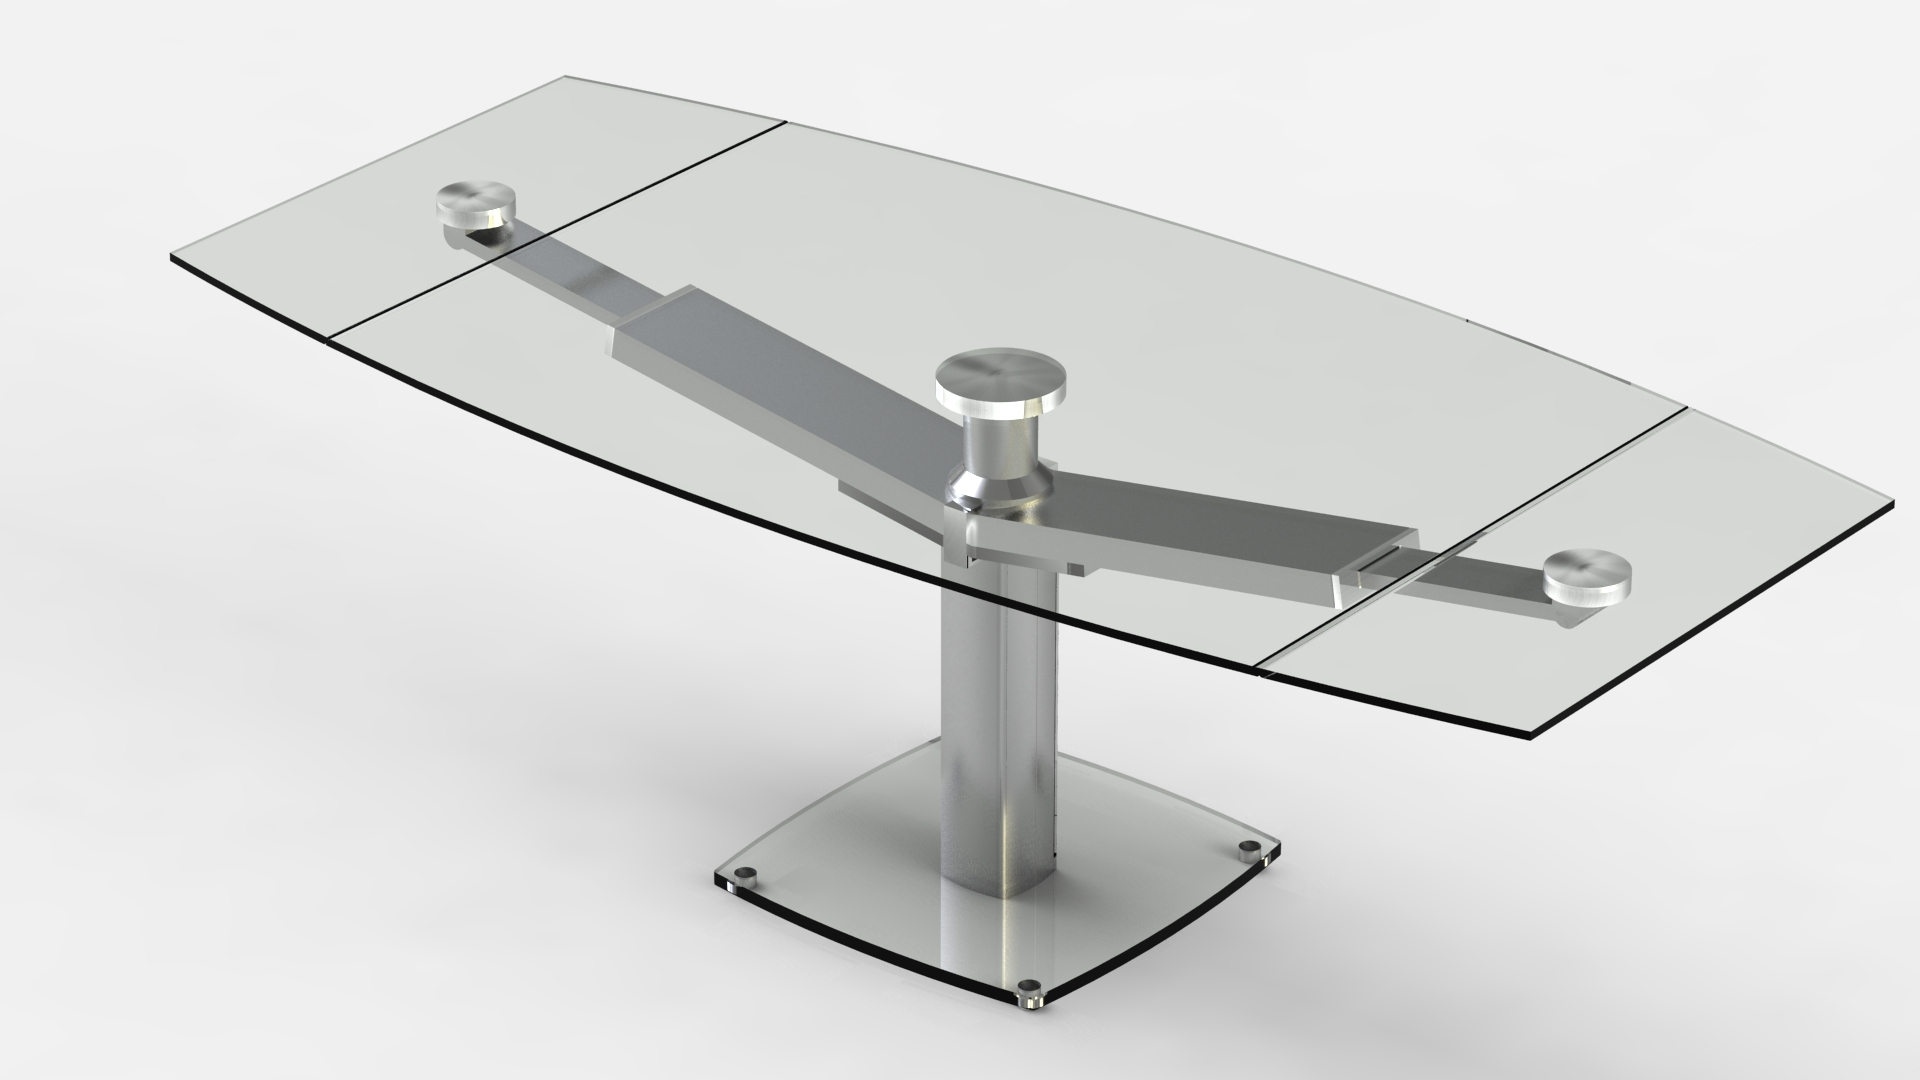 Table repas design en verre tremp avec rallonges club eda for Table de cuisine design avec rallonge